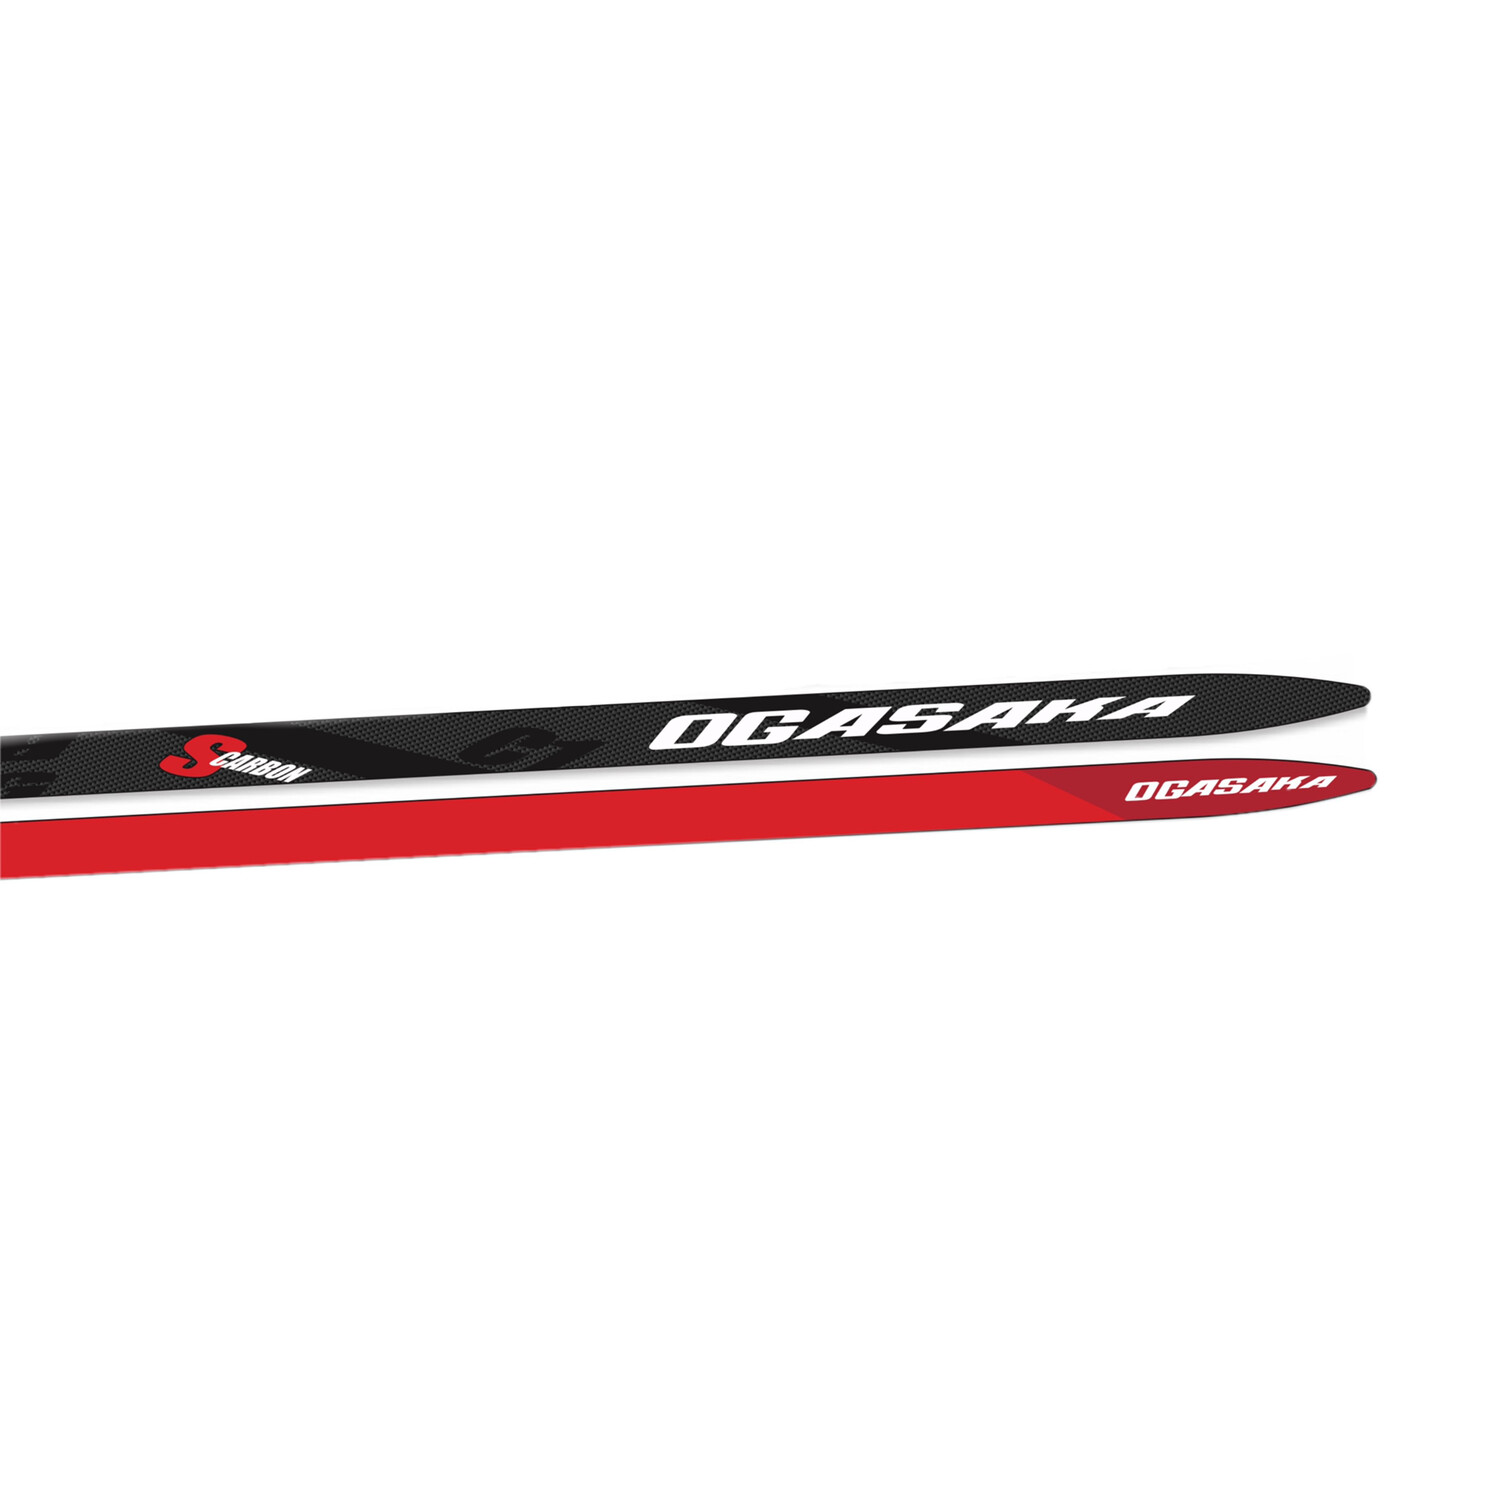 Ogasaka racing ski C1 RED